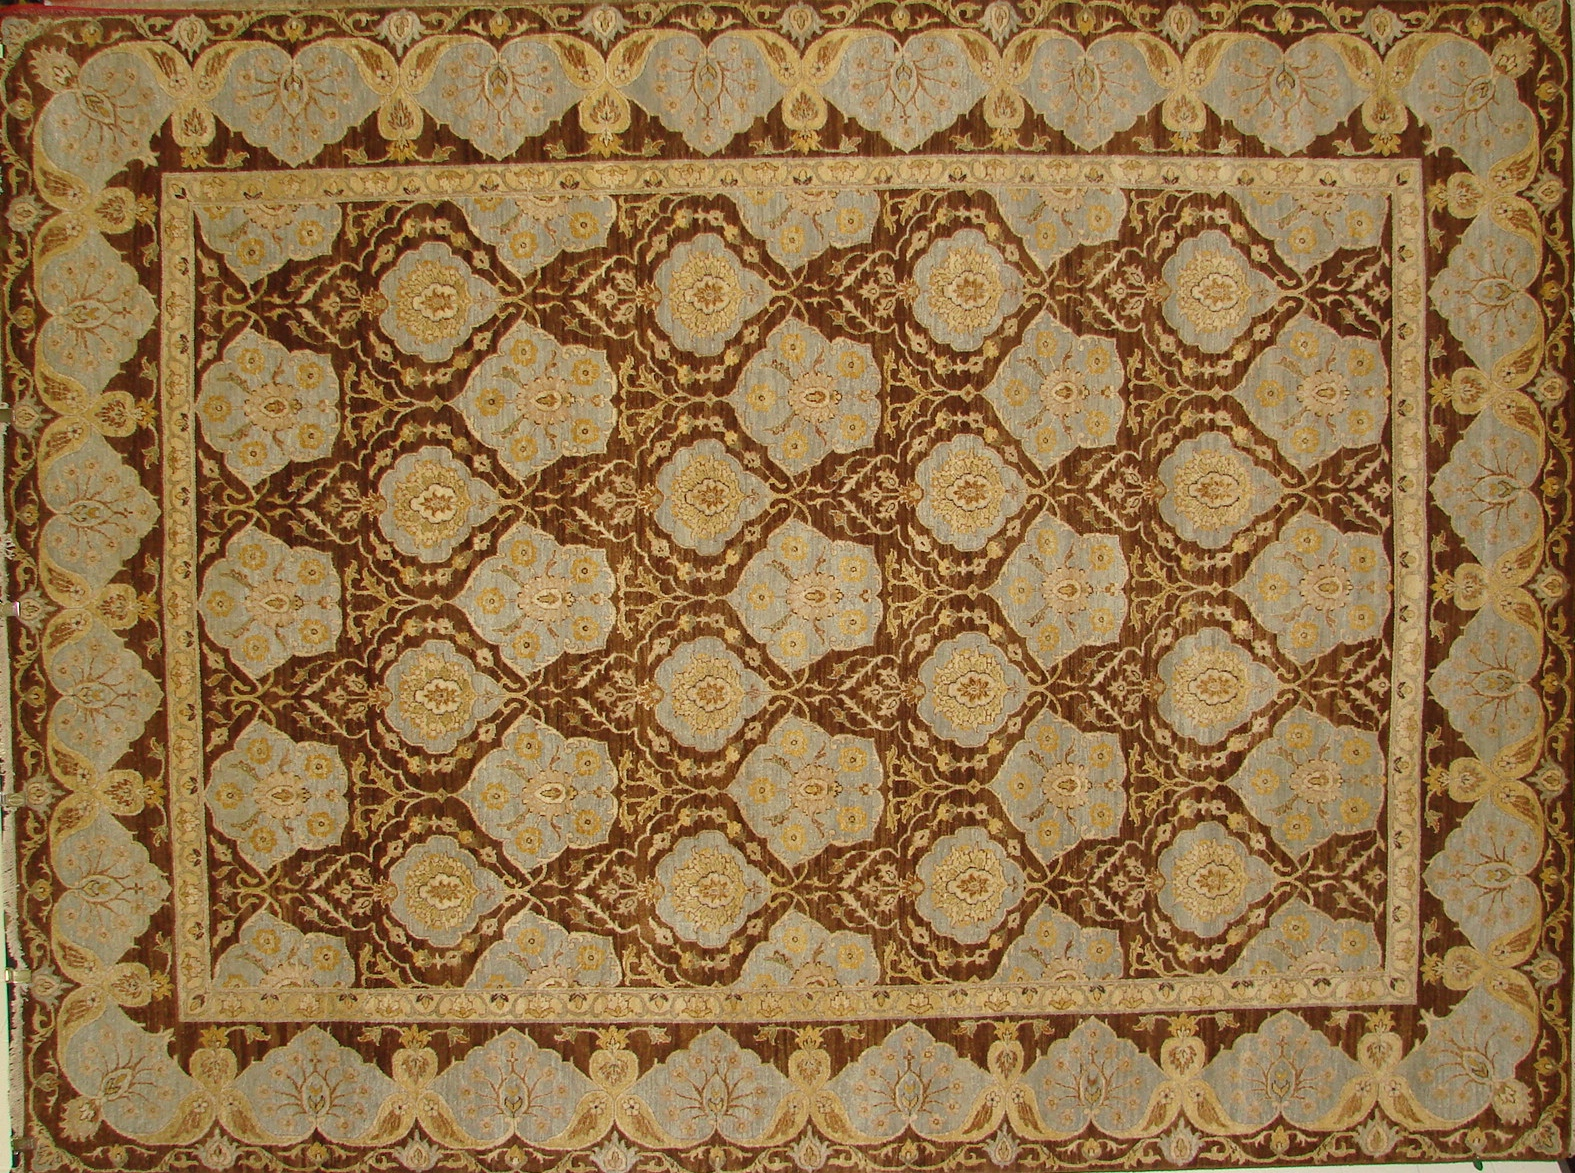 9x12 Traditional Hand Knotted Wool Area Rug - MR16417